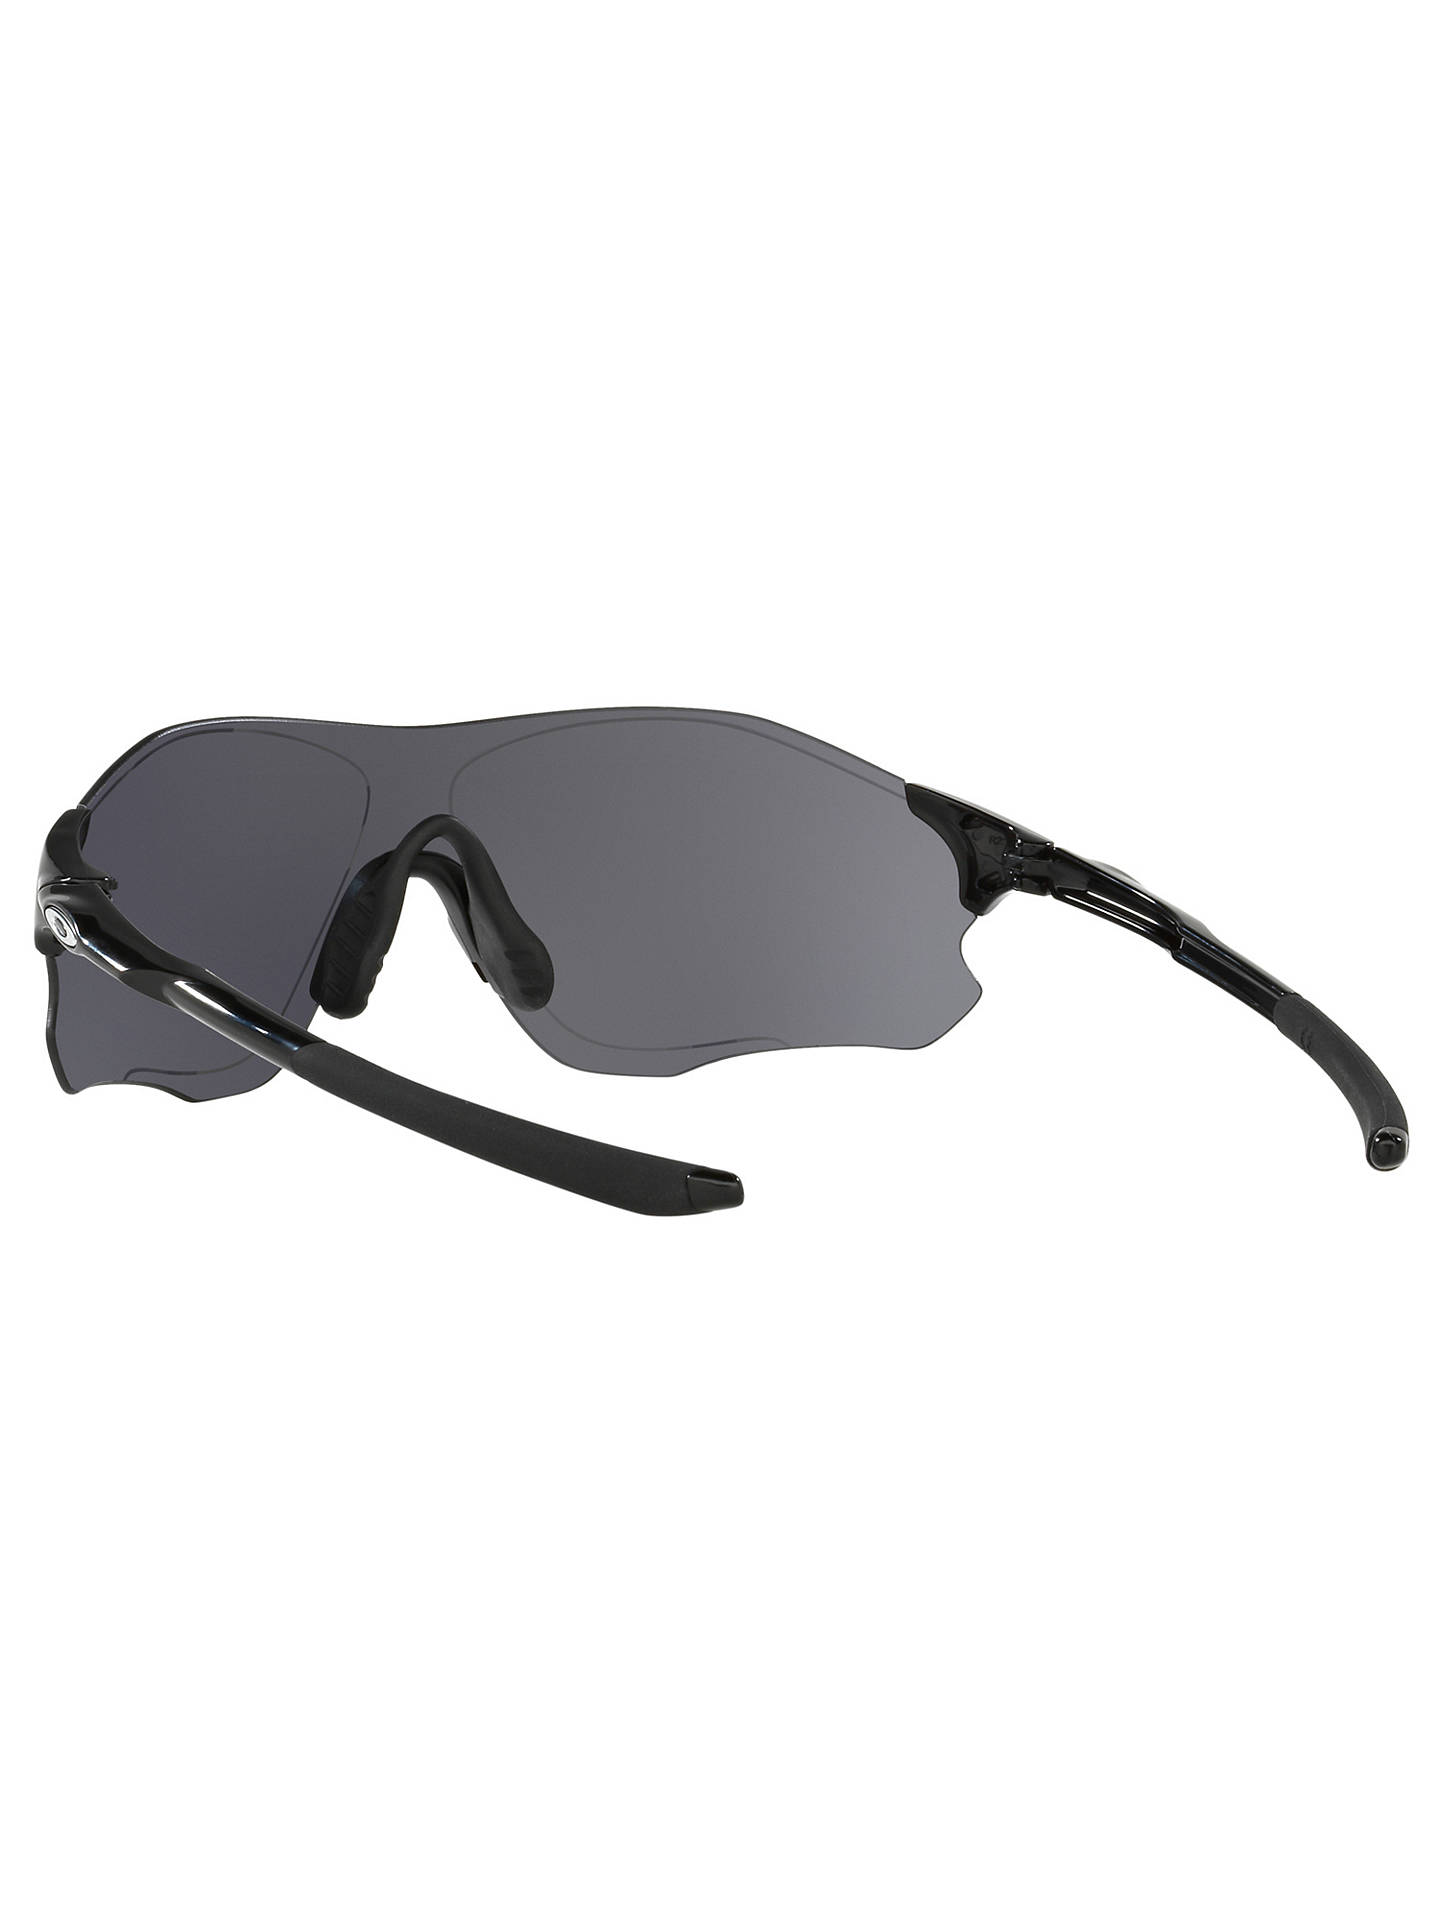 BuyOakley OO9308 Men's EVZero Path Road Sunglasses, Black/Grey Online at johnlewis.com